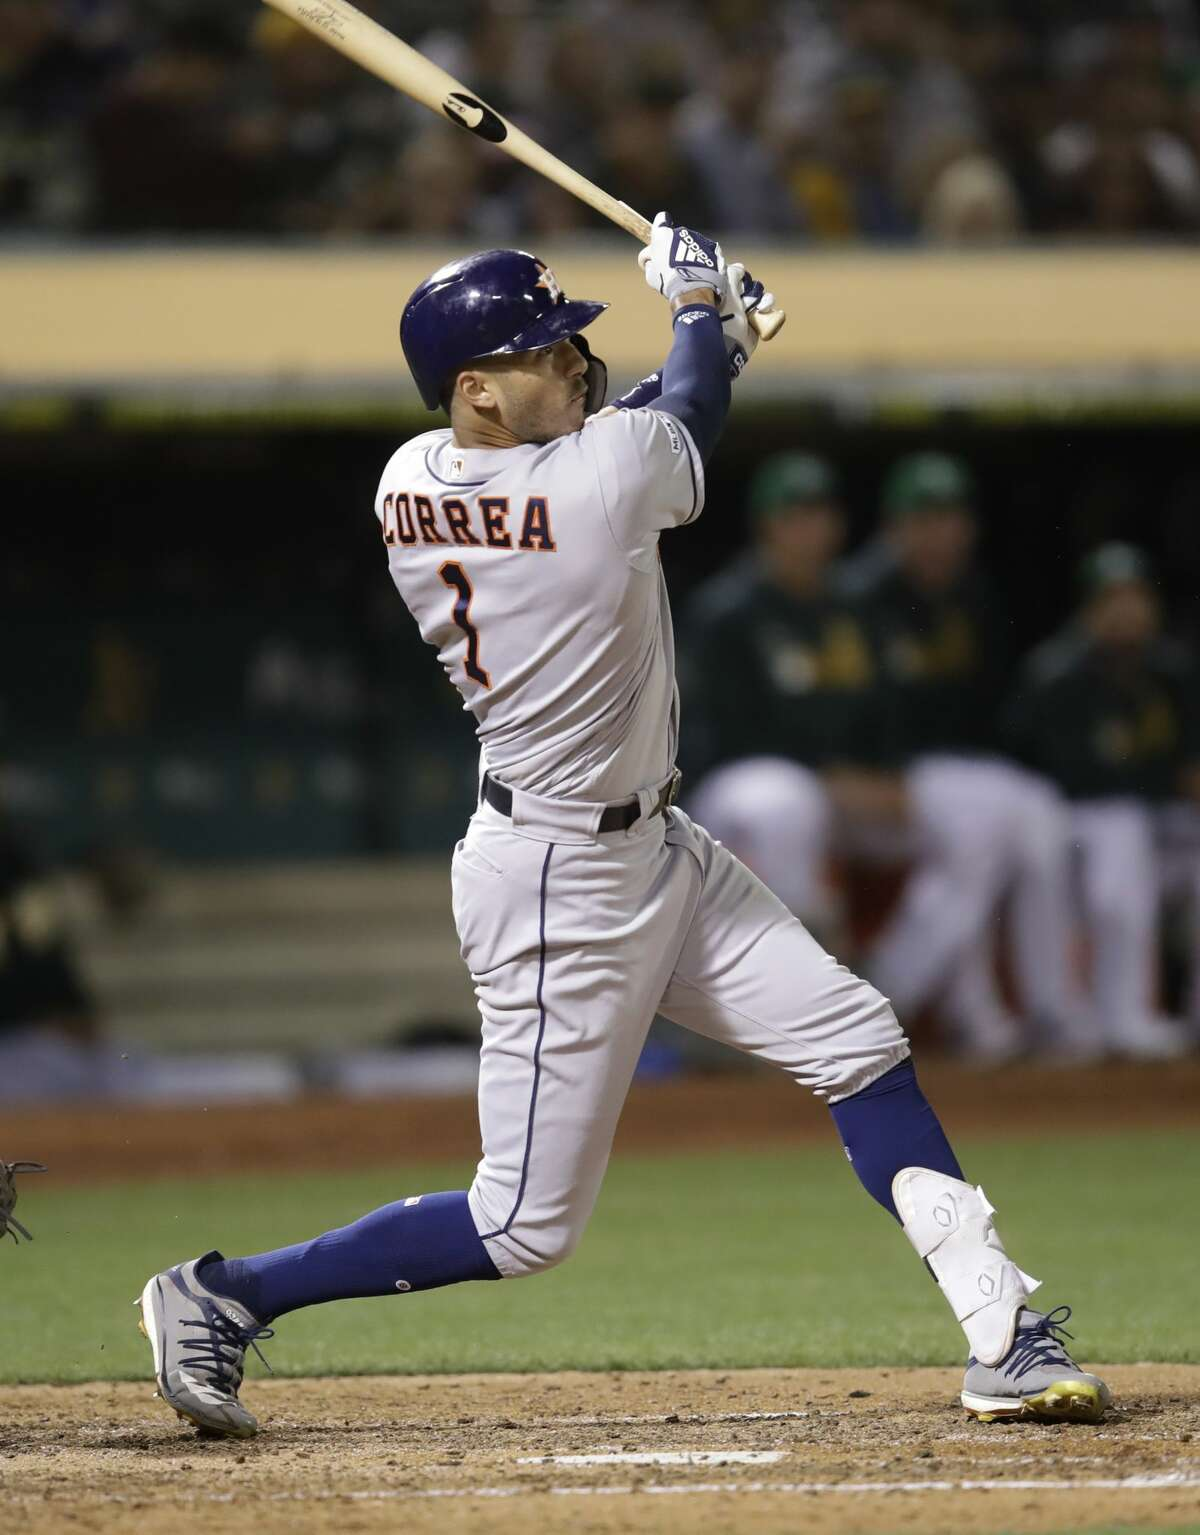 Houston Astros' Carlos Correa follows through on an RBI sacrifice fly off Oakland Athletics' Tanner Roark during the sixth inning of a baseball game Friday, Aug. 16, 2019, in Oakland, Calif. (AP Photo/Ben Margot)